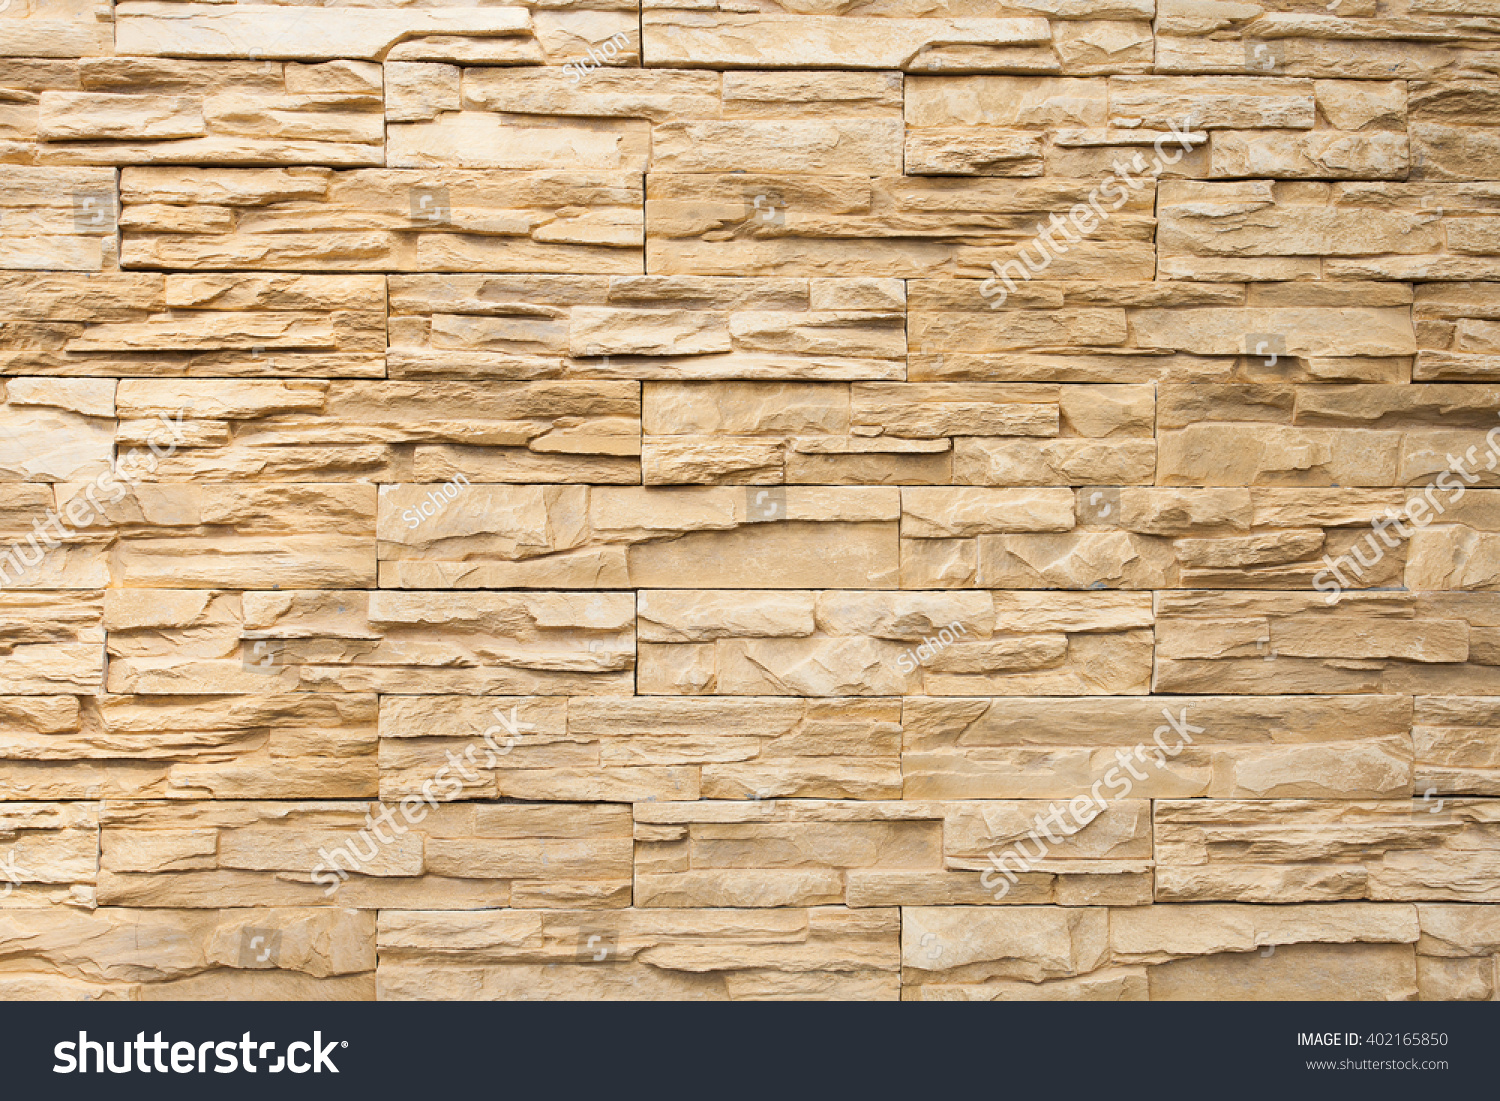 Old Brown Bricks Wall Pattern Background Stock Photo 402165850 ...